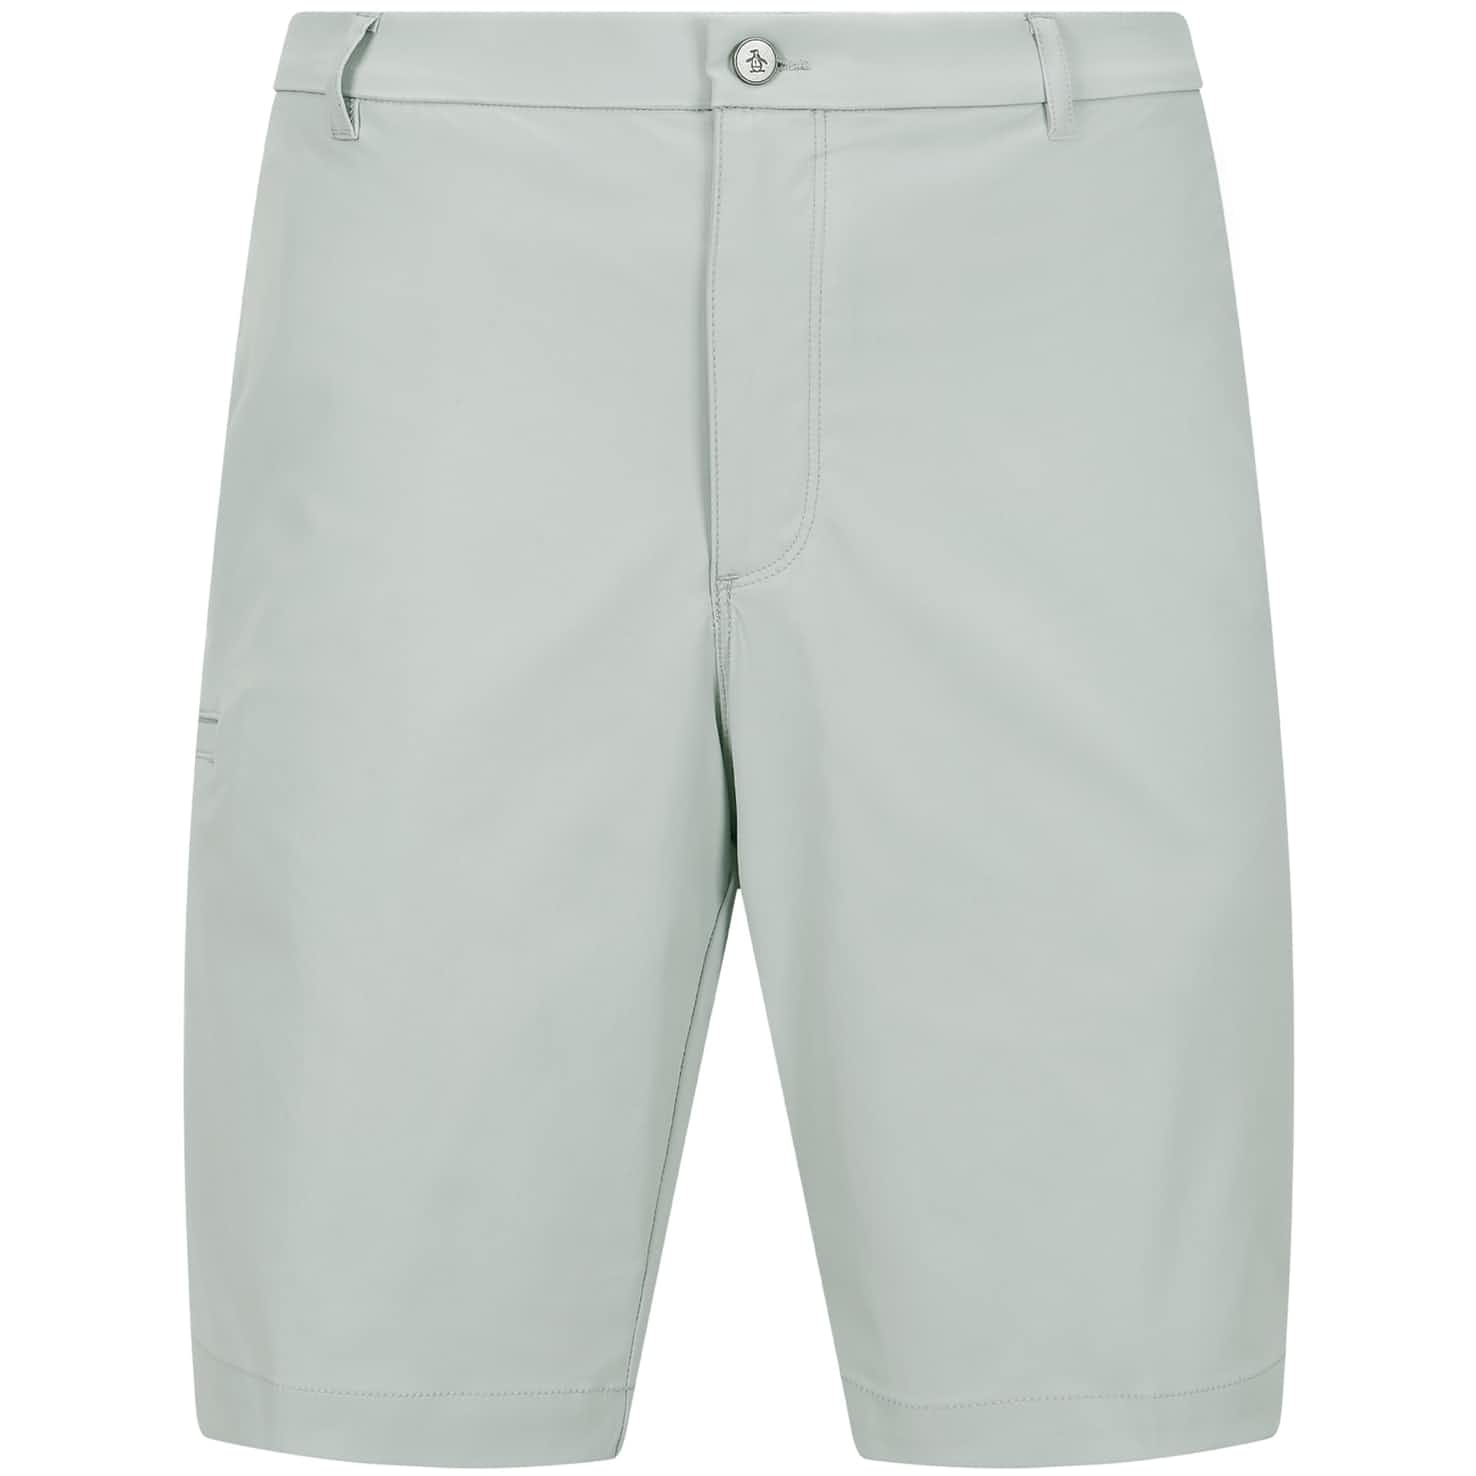 Easy Shorts Pearl Blue - SS20